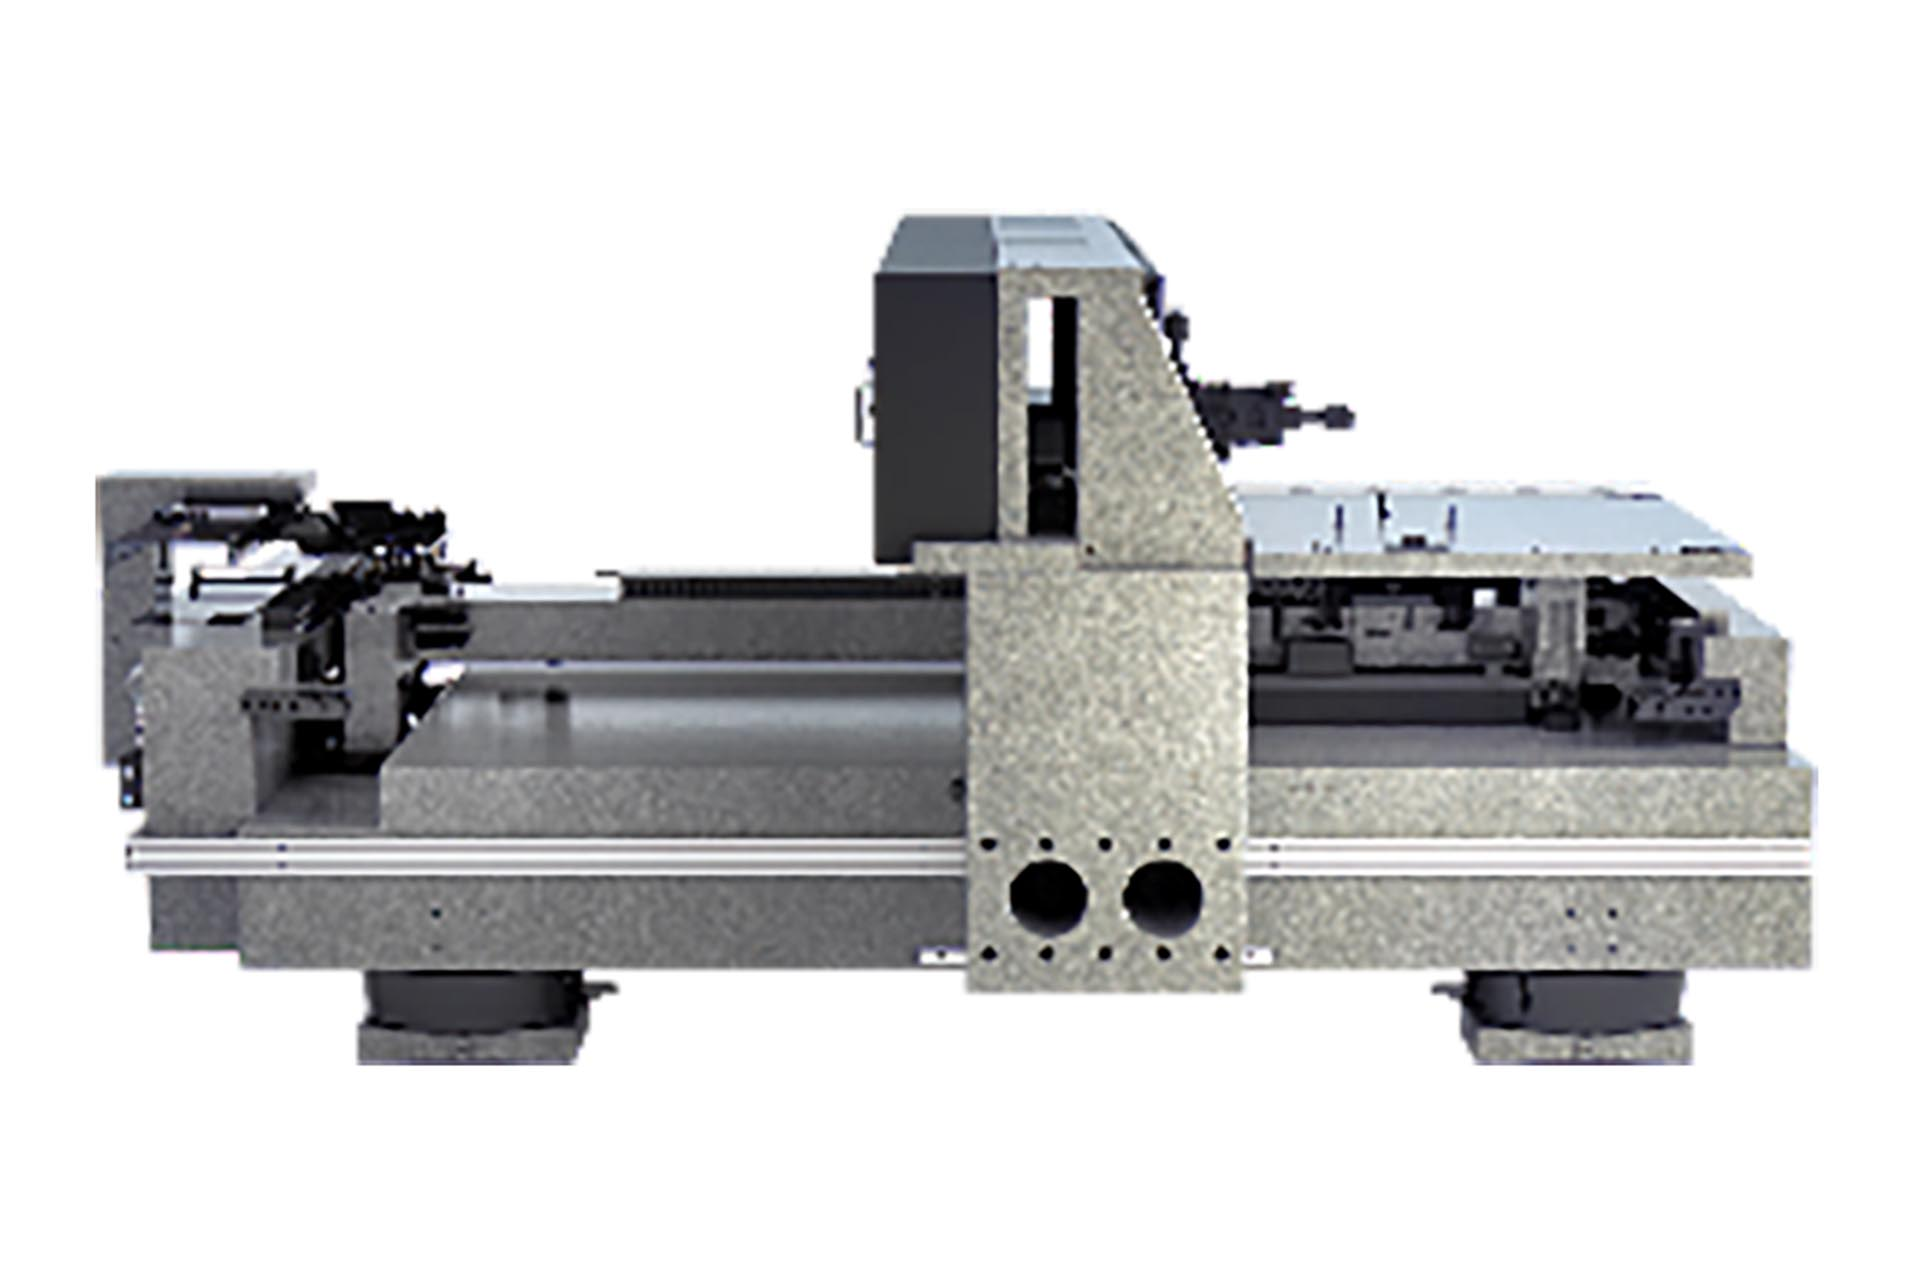 Custom-made stages of almost any size are made in-house at Heidelberg Instruments.